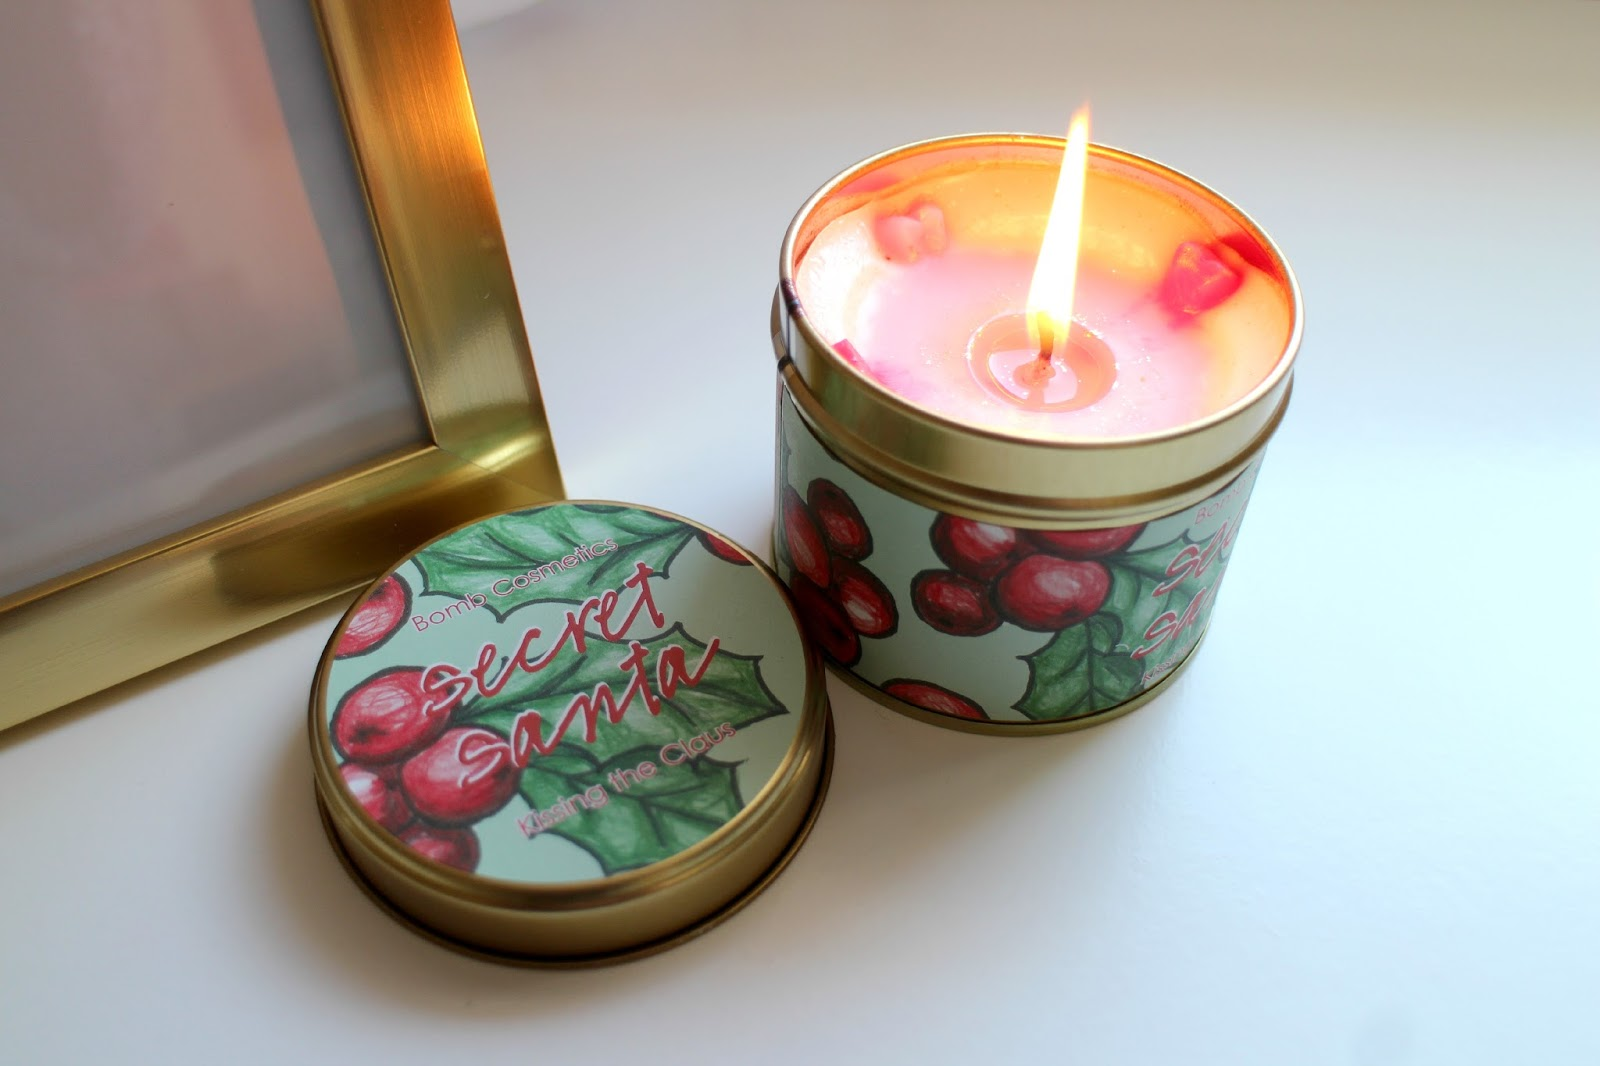 Bomb Cosmetics Candle Secret Santa